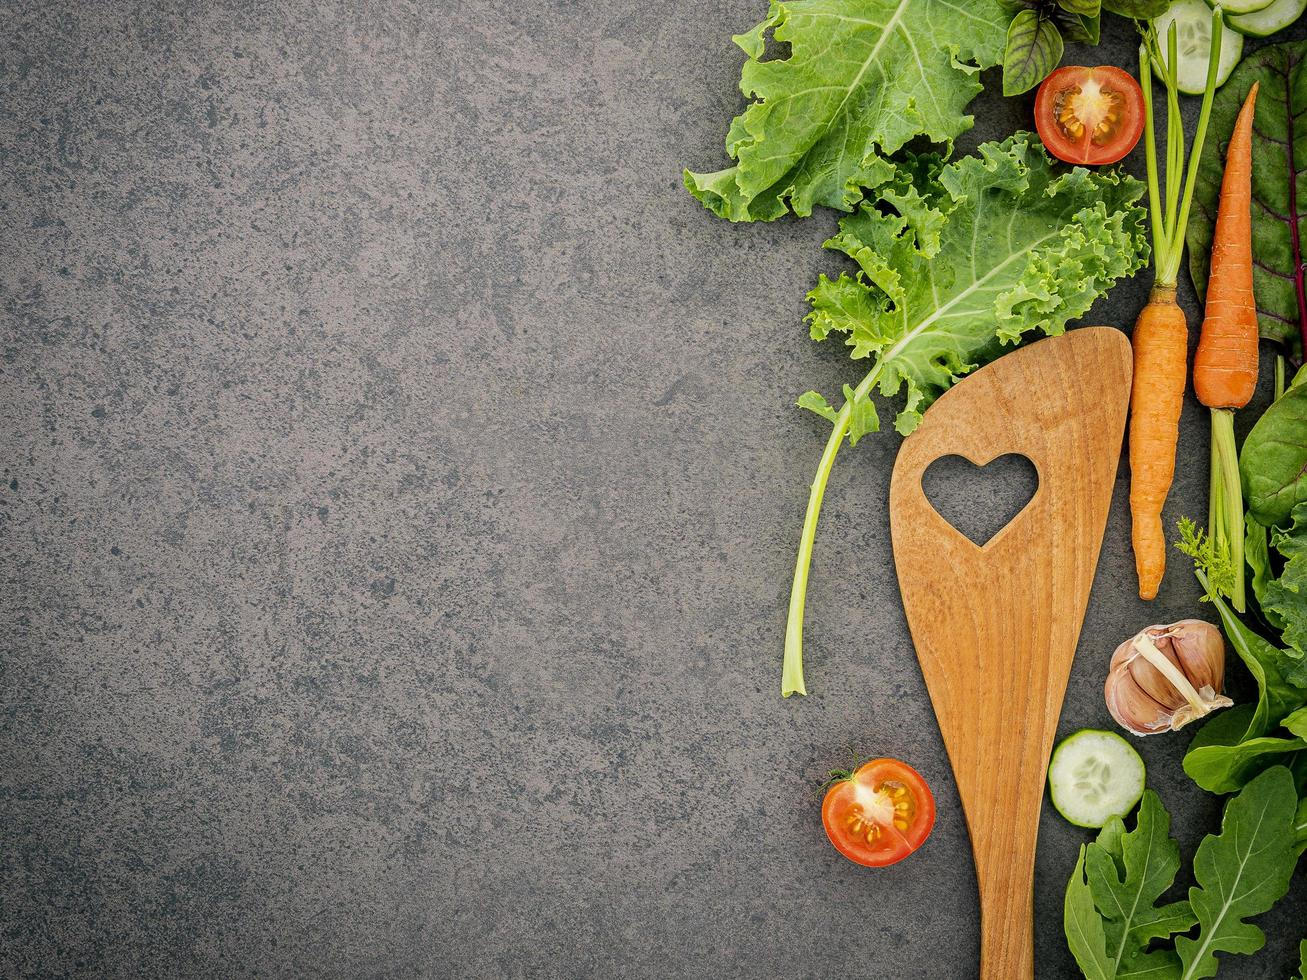 Veggies and a wooden utensil with copy space photo